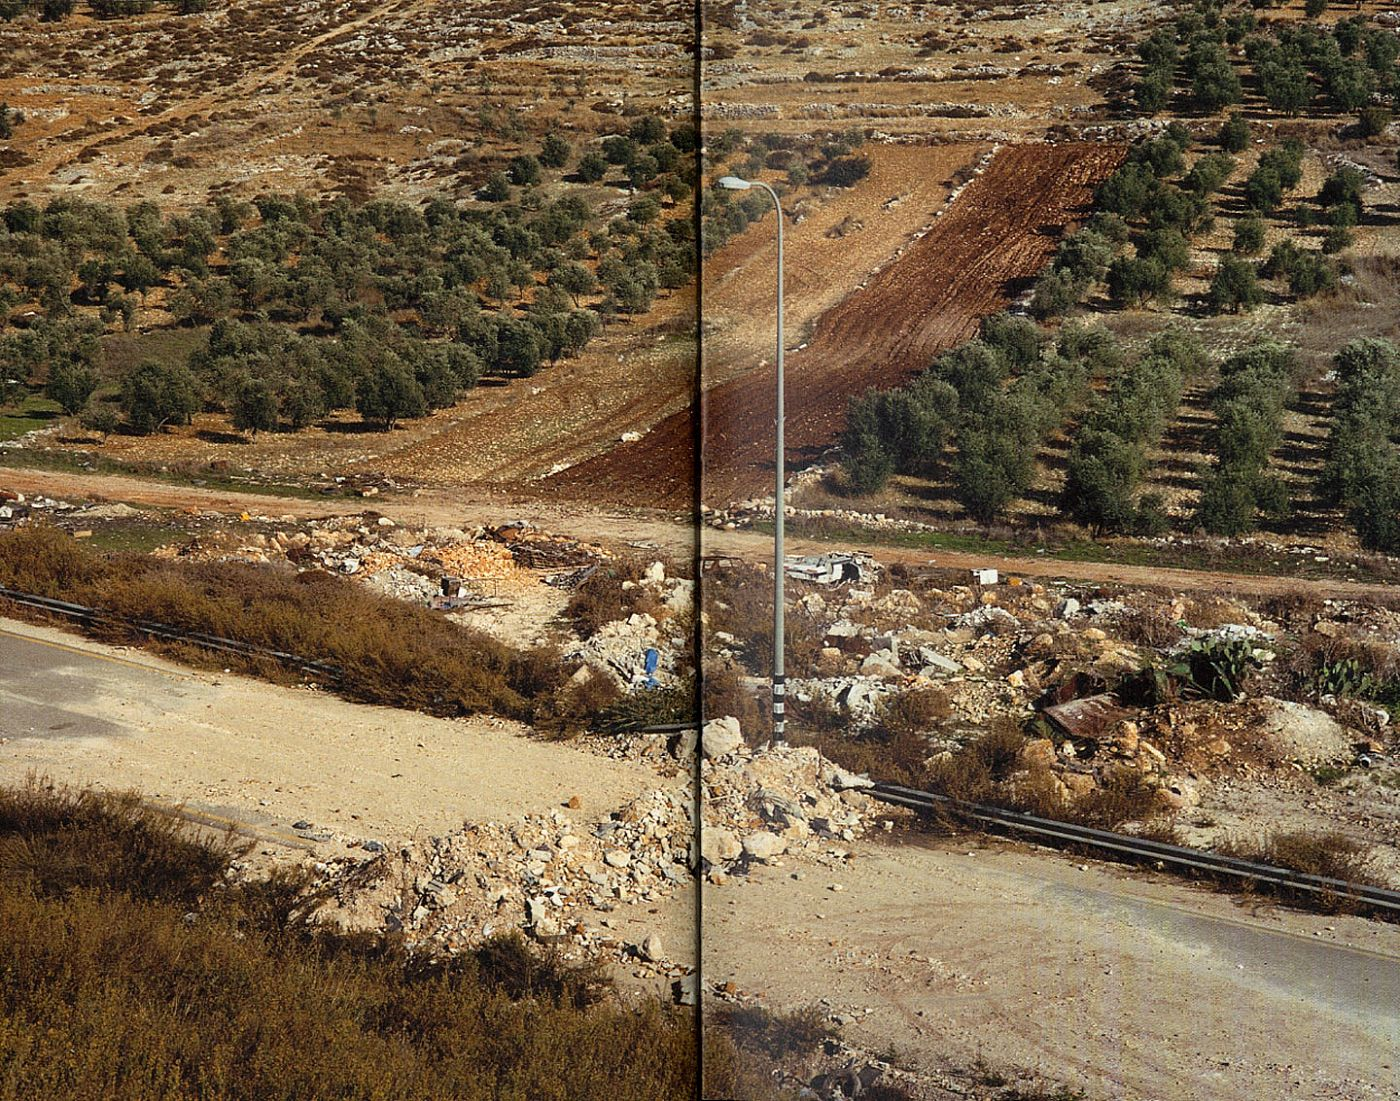 Sophie Ristelhueber: WB (West Bank)